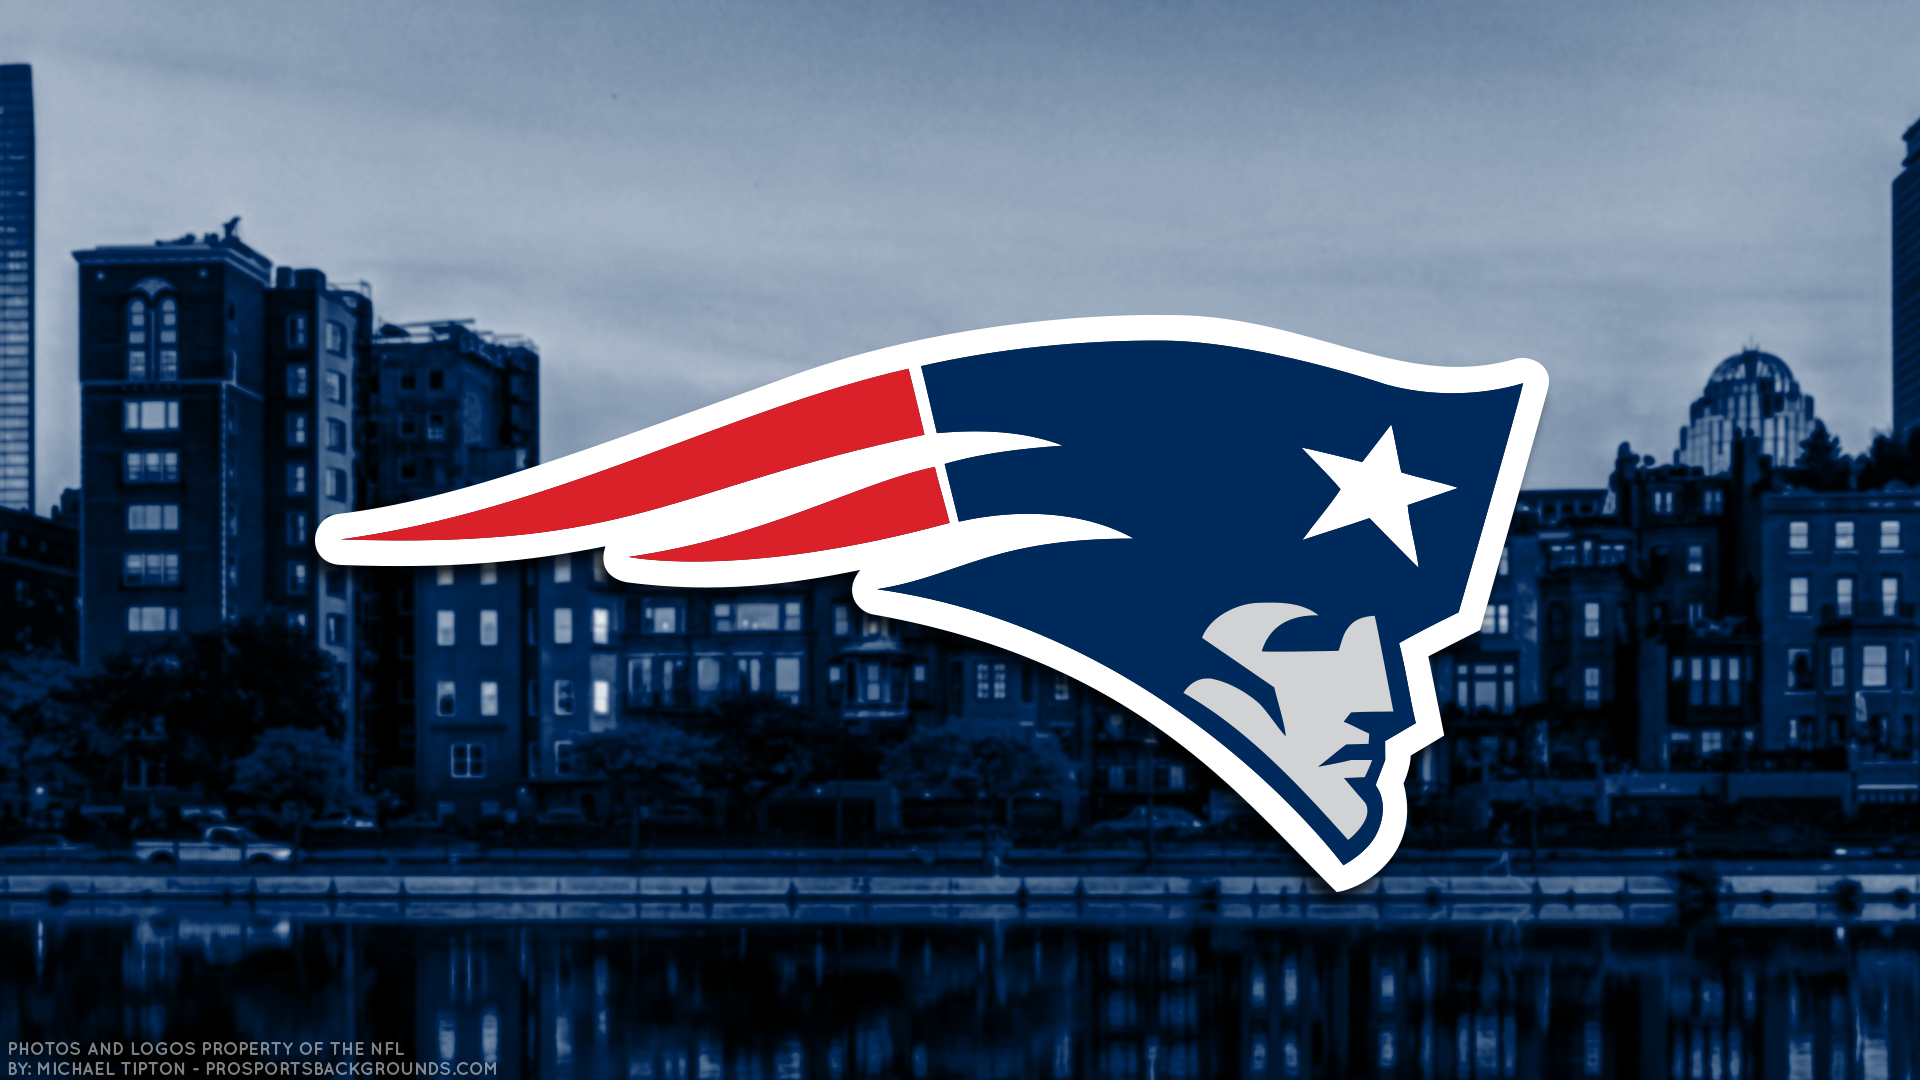 New England Patriots HD Wallpaper | Background Image | 1920x1080 | ID:981400 - Wallpaper Abyss